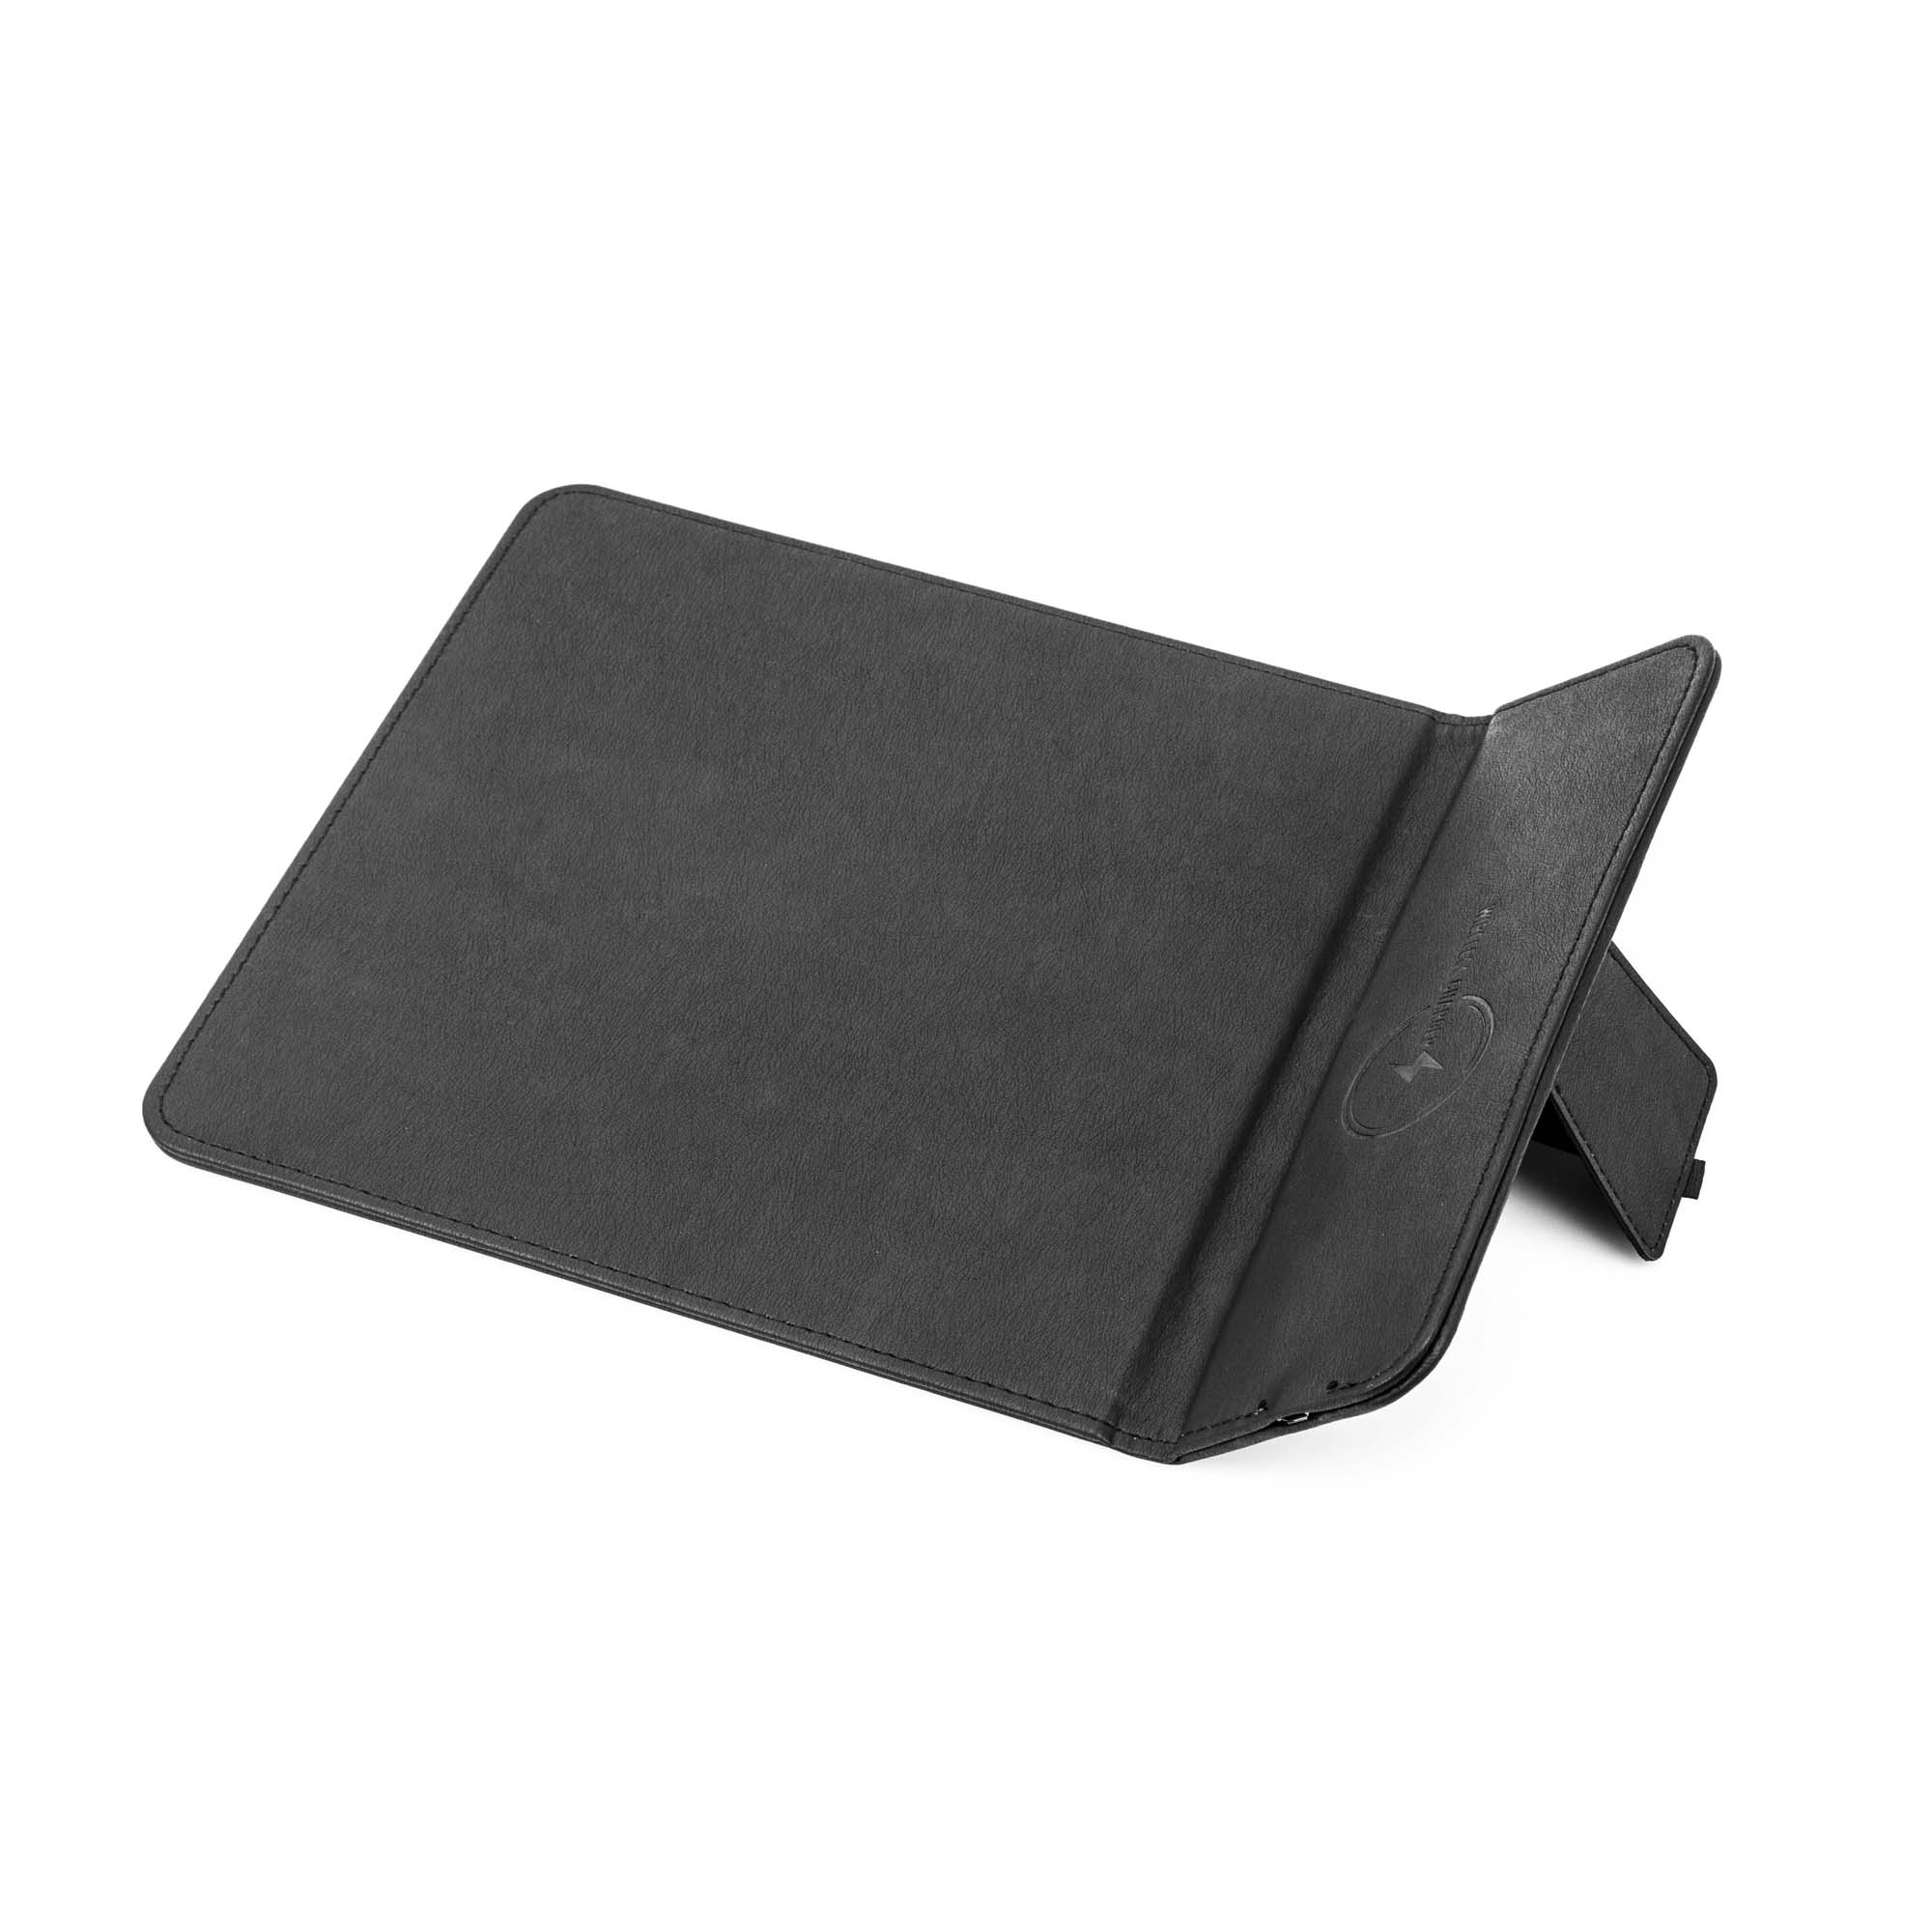 3 in 1 Fast Wireless Charger Mouse Pad With Phone Holder